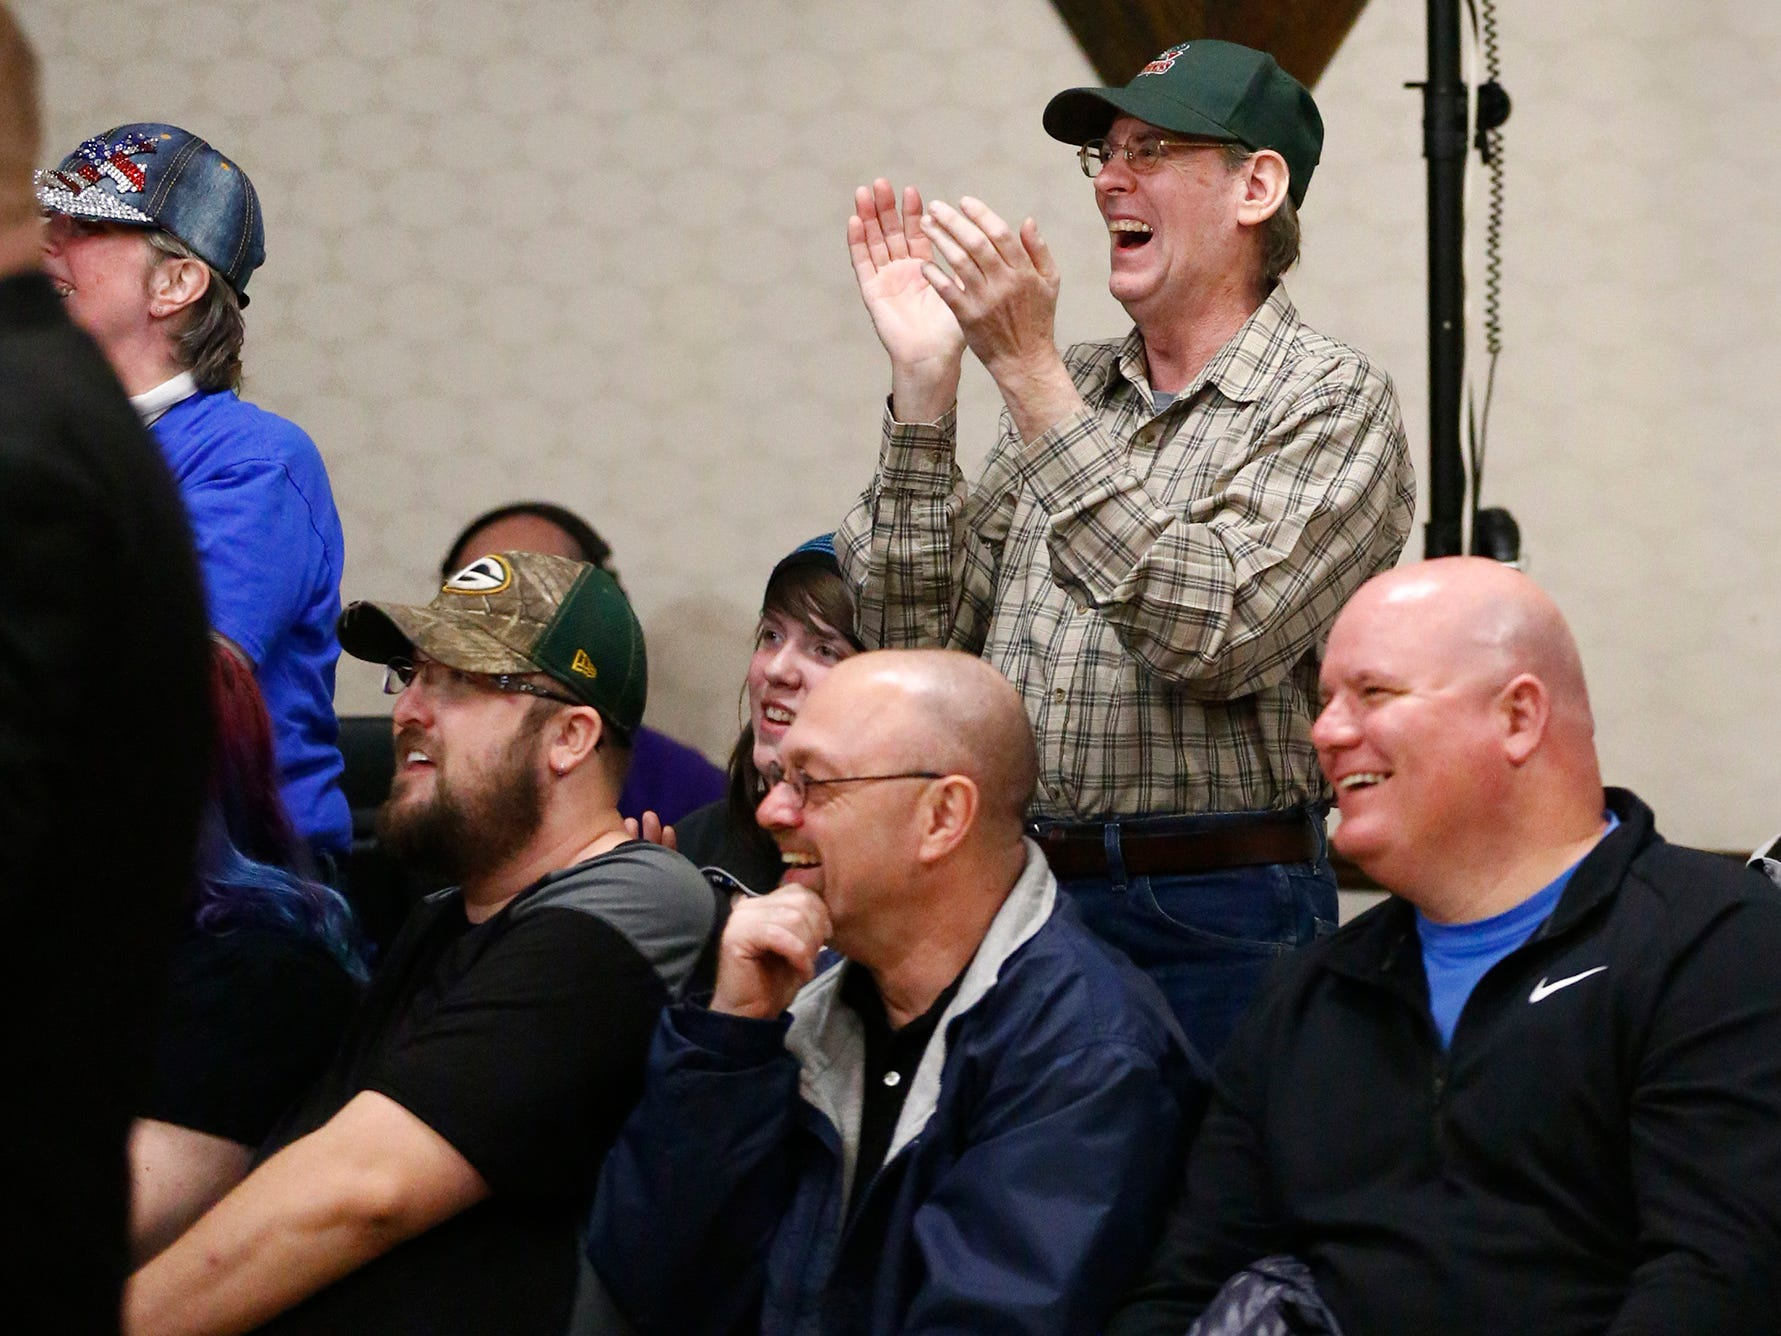 """The crowd reacts to Lou Zhur's win over Angel Armani during the Brew City Wrestling """"Rise To Honor XV- 15 Years of FAN-demonium"""" event at the Waukesha Elks Lodge on Jan. 11 that featured seven matches during the evening."""